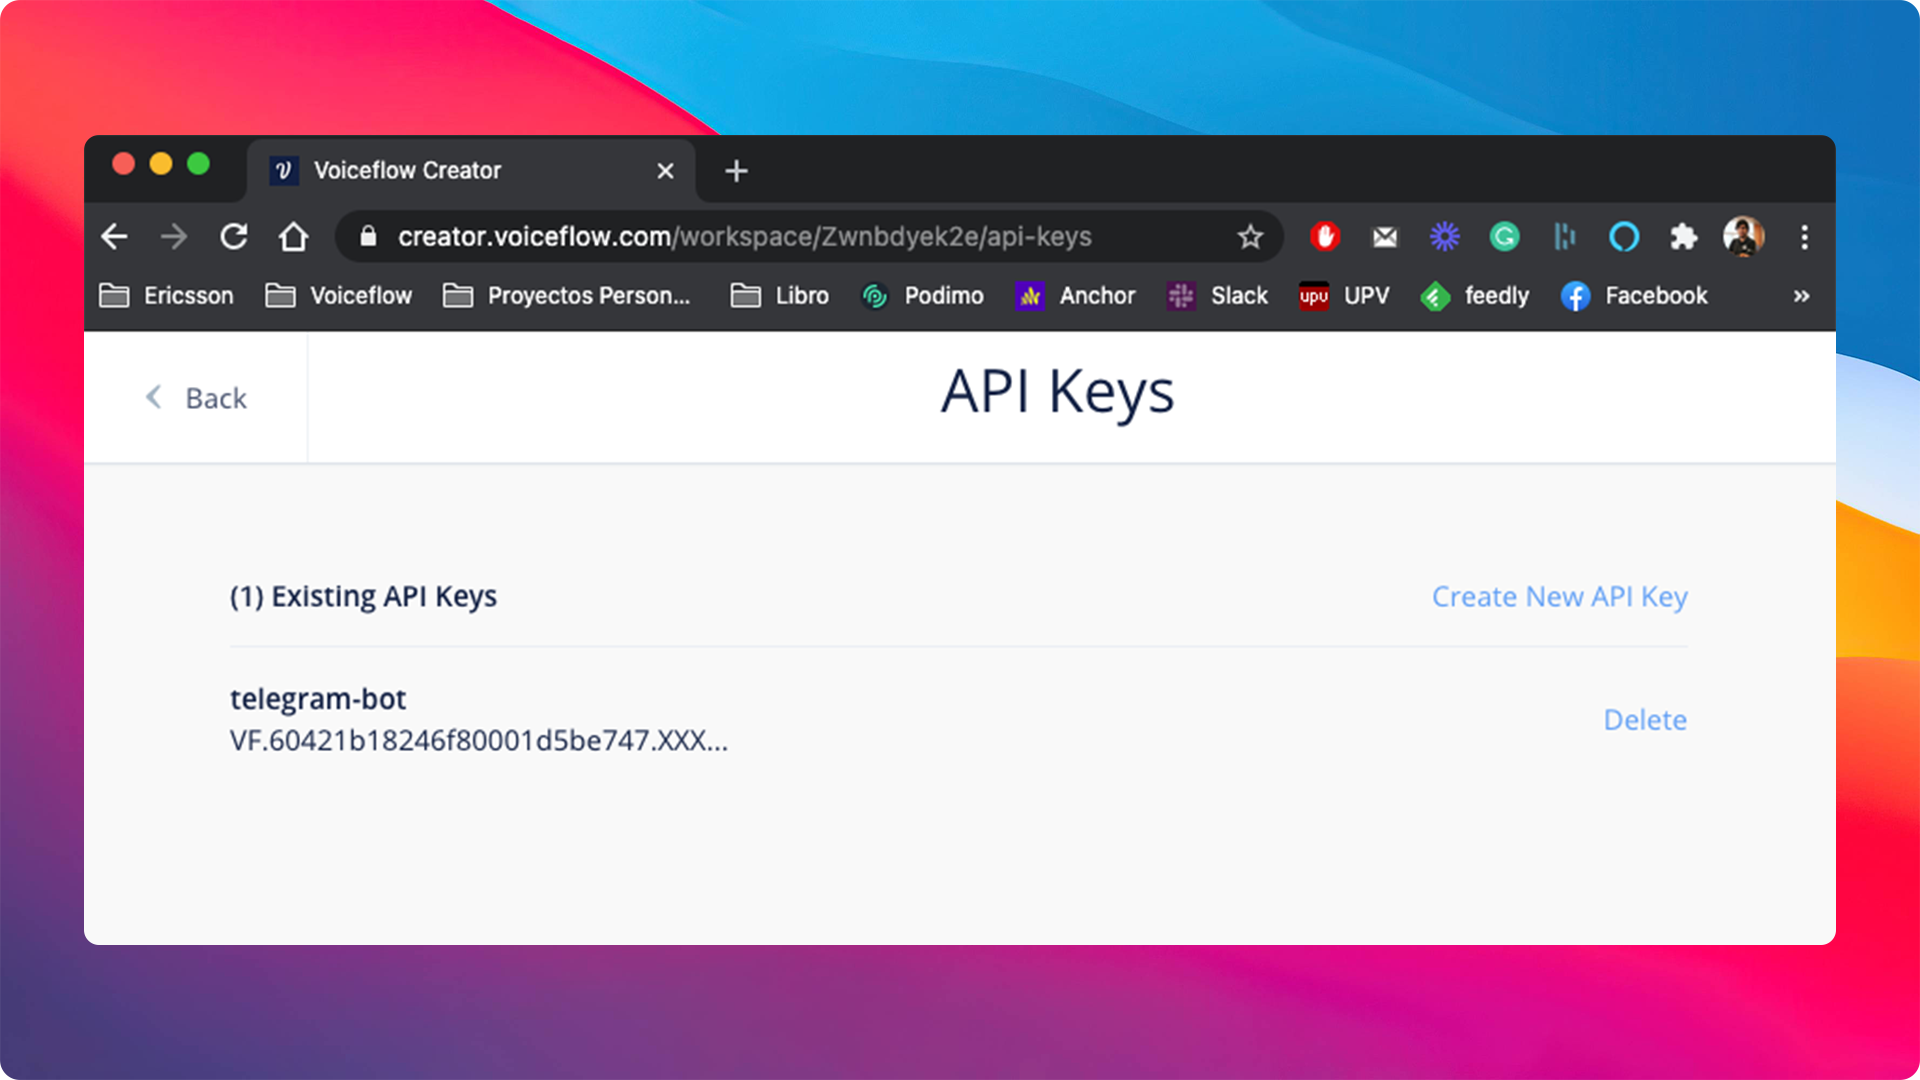 Your new API key is then stored in your project